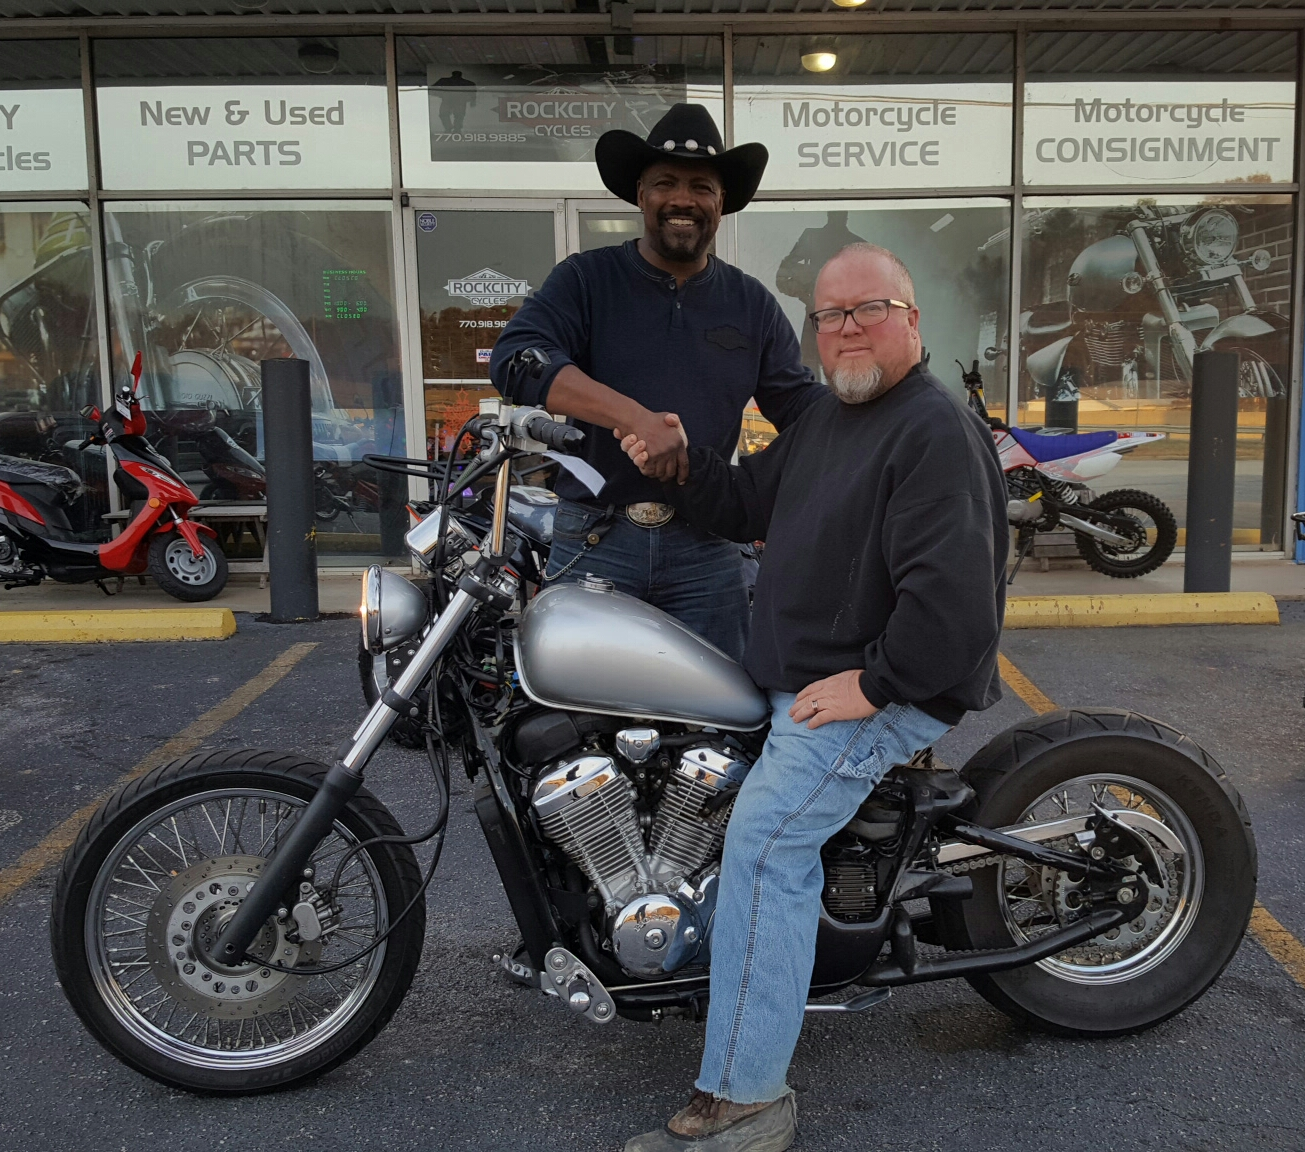 Darrin S. with his 2000 Honda Shadow VLX Deluxe VT600